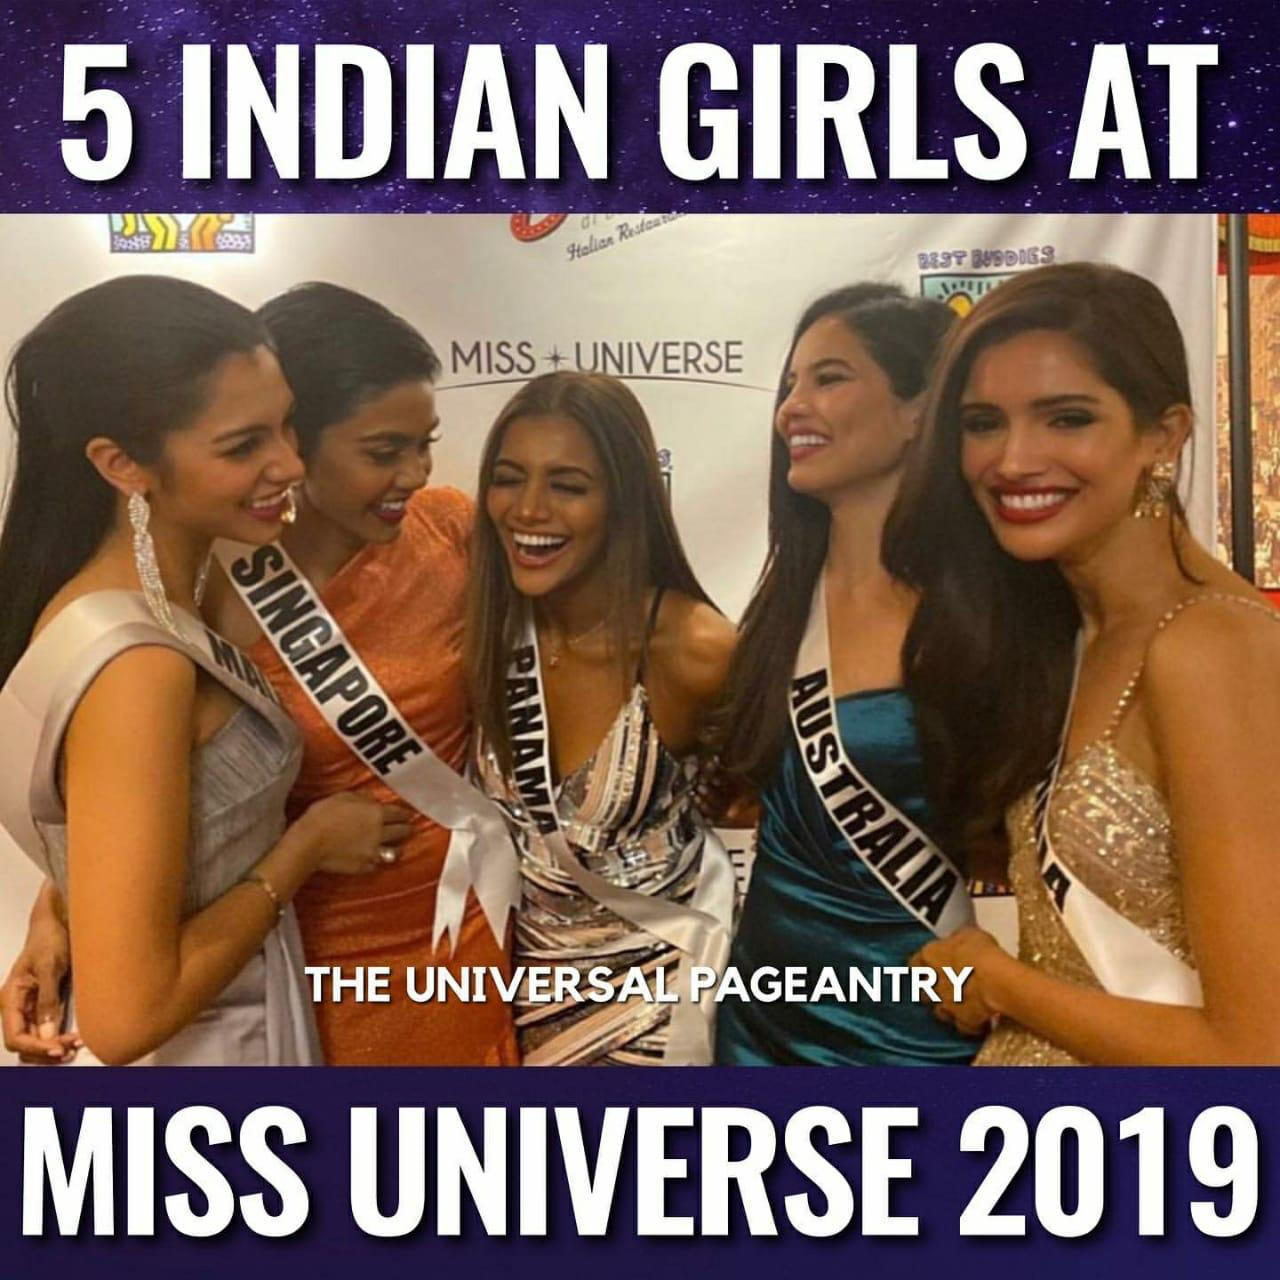 for-the-first-time-five-indian-girls-took-part-in-miss-universe-2019-competition